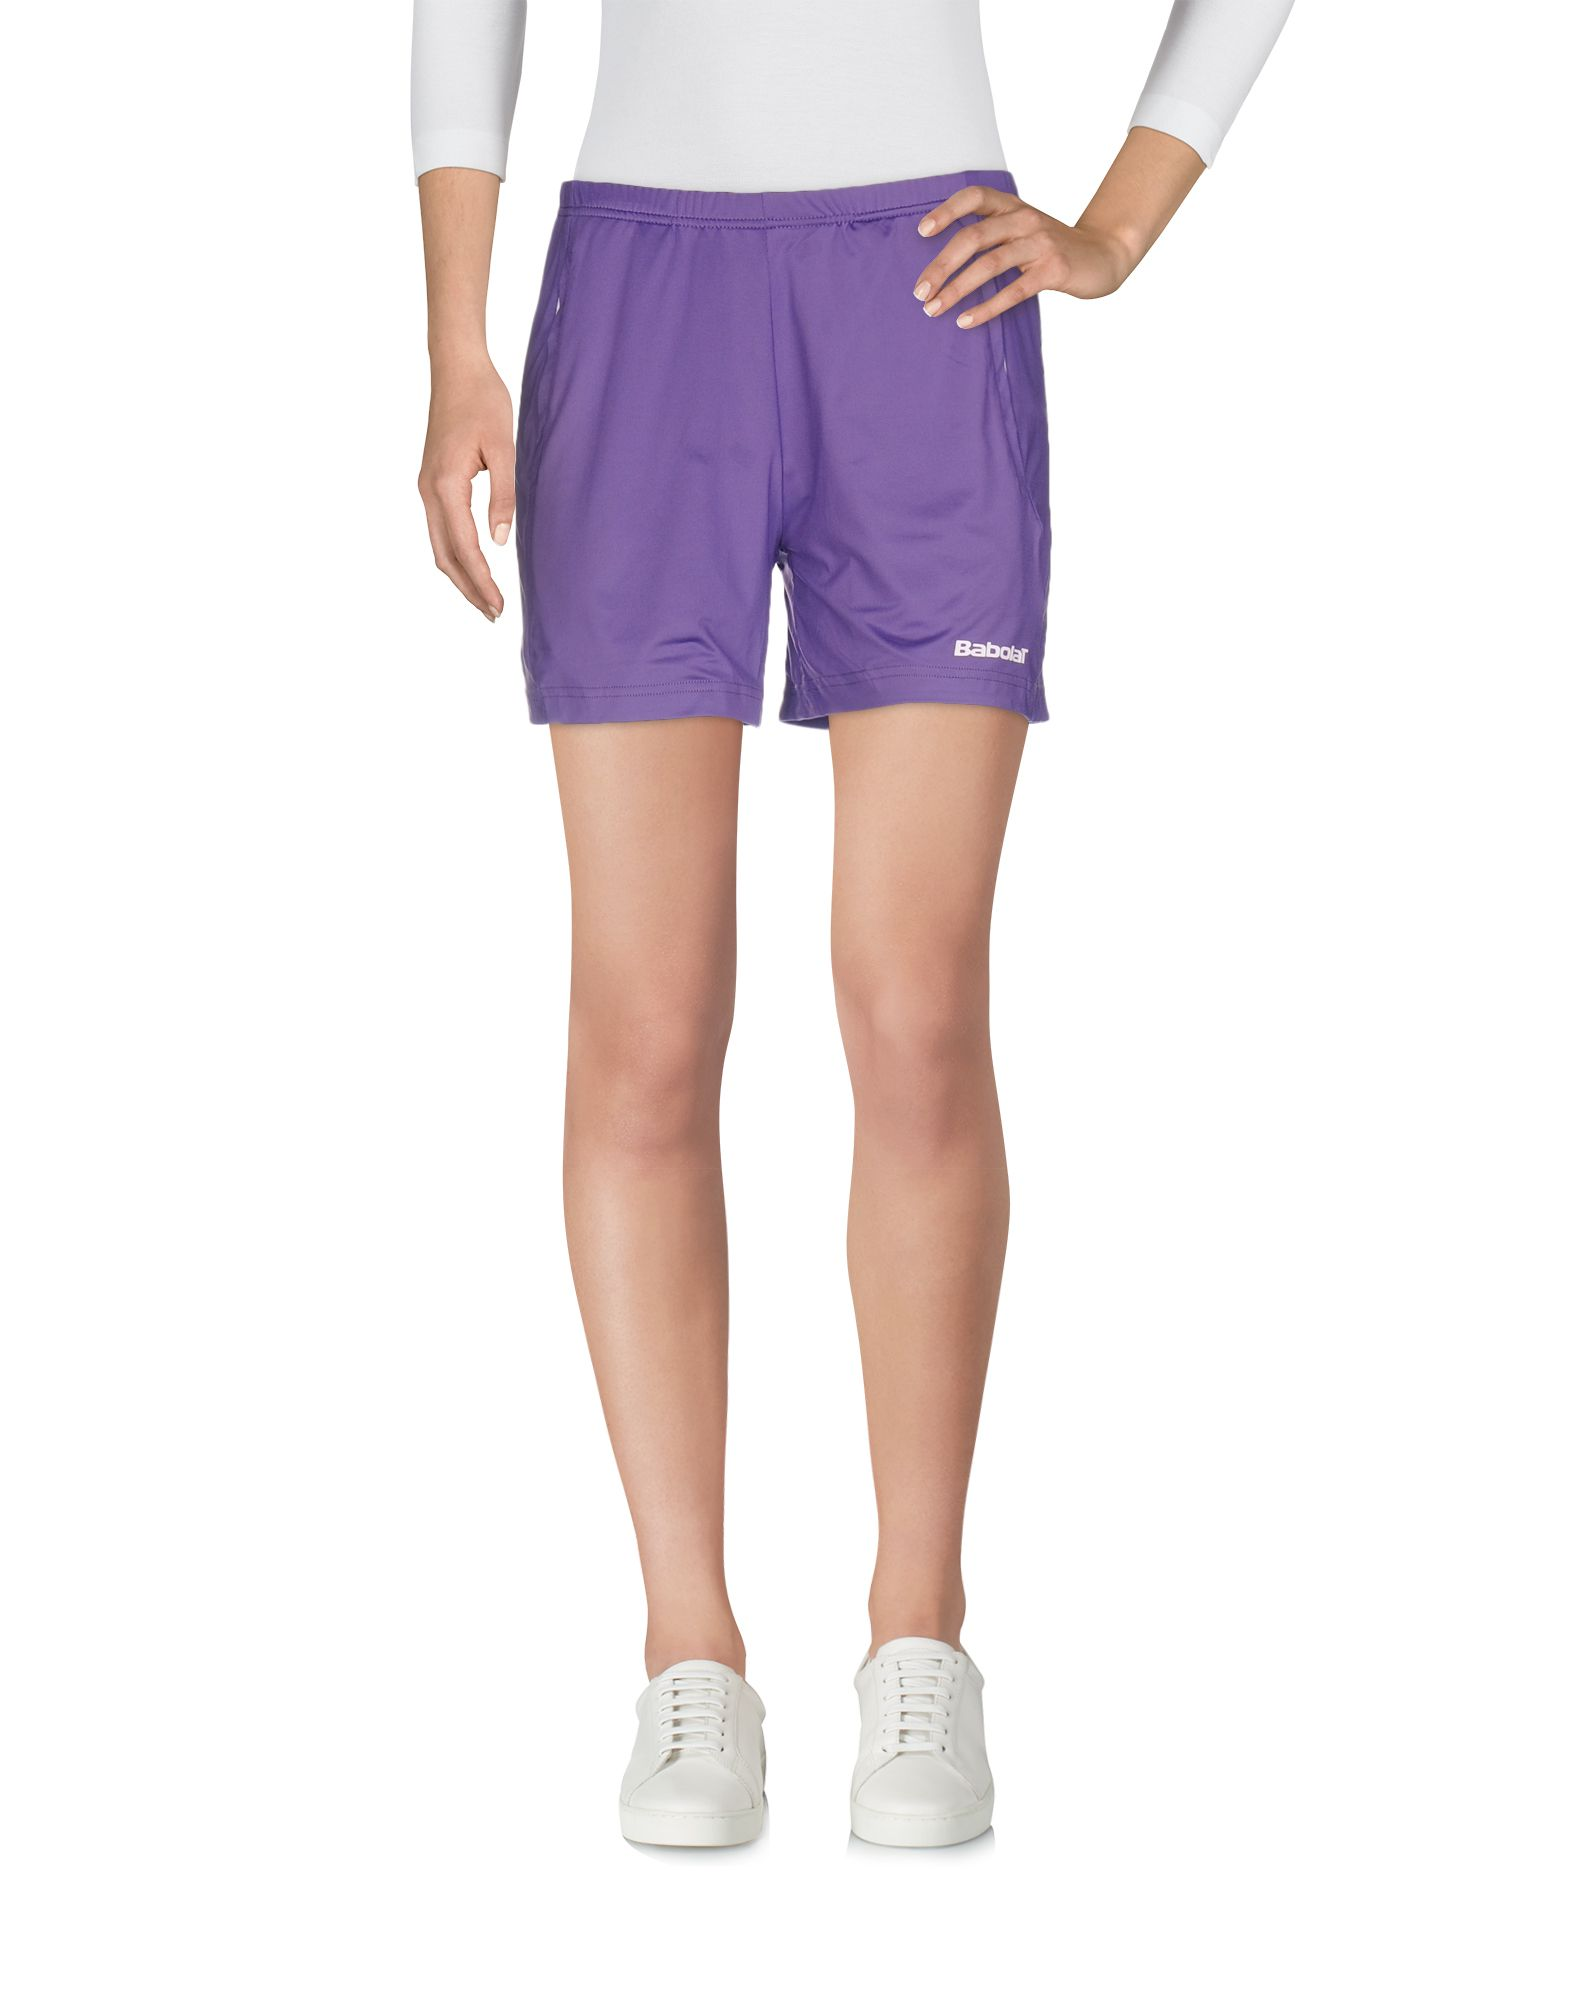 BABOLAT Shorts & Bermuda in Purple